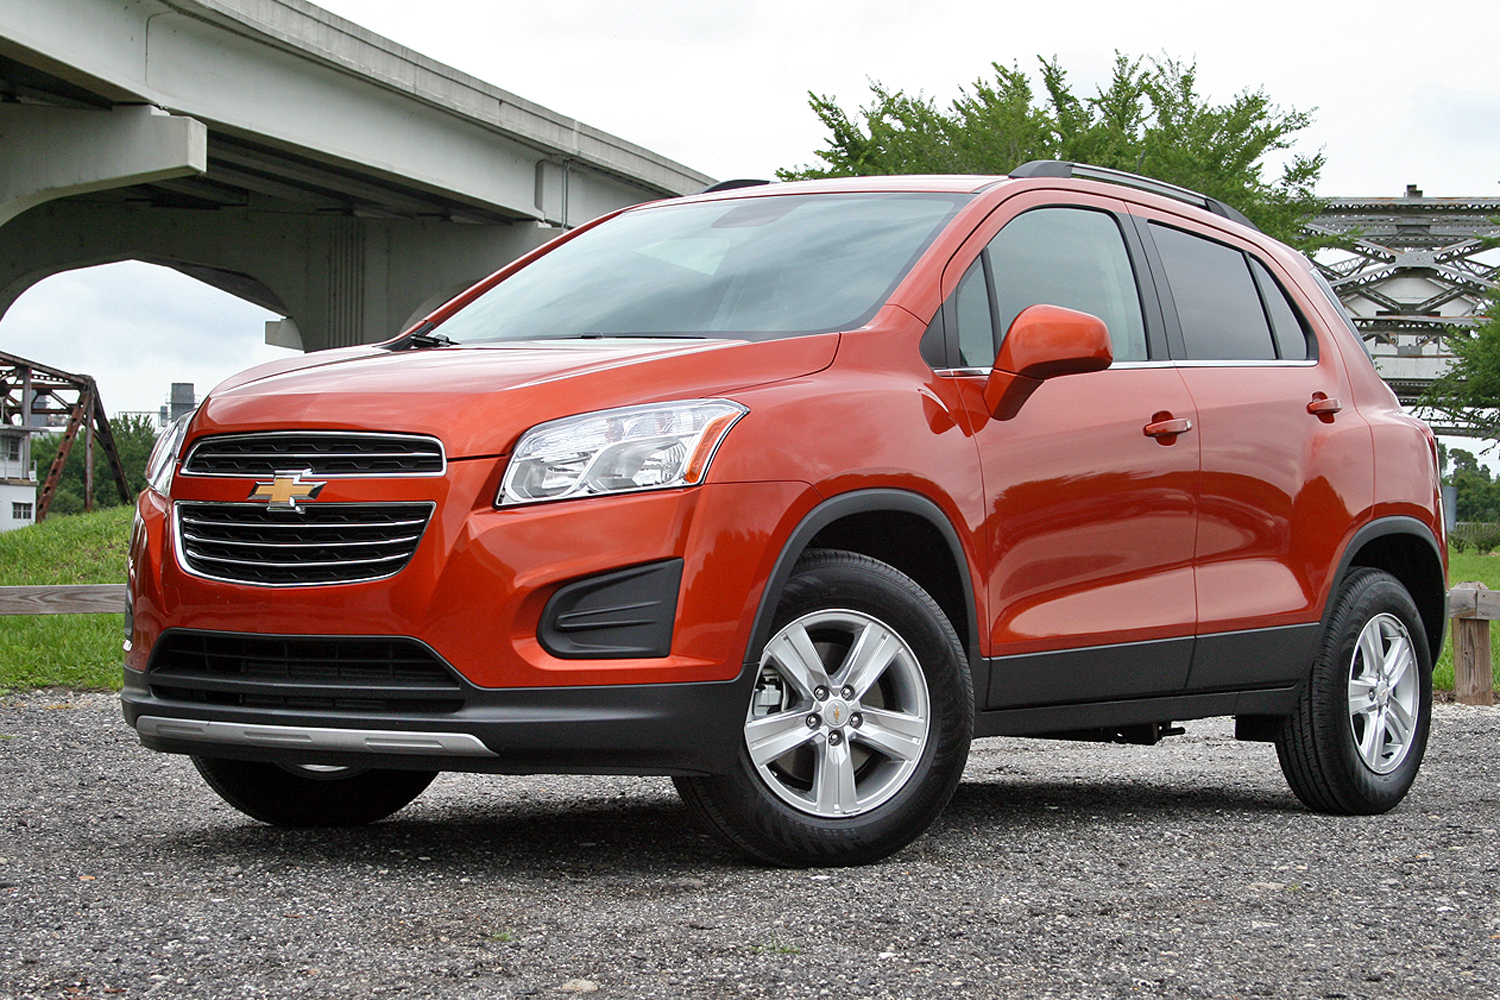 2015 Chevrolet Trax - Driven | Top Speed